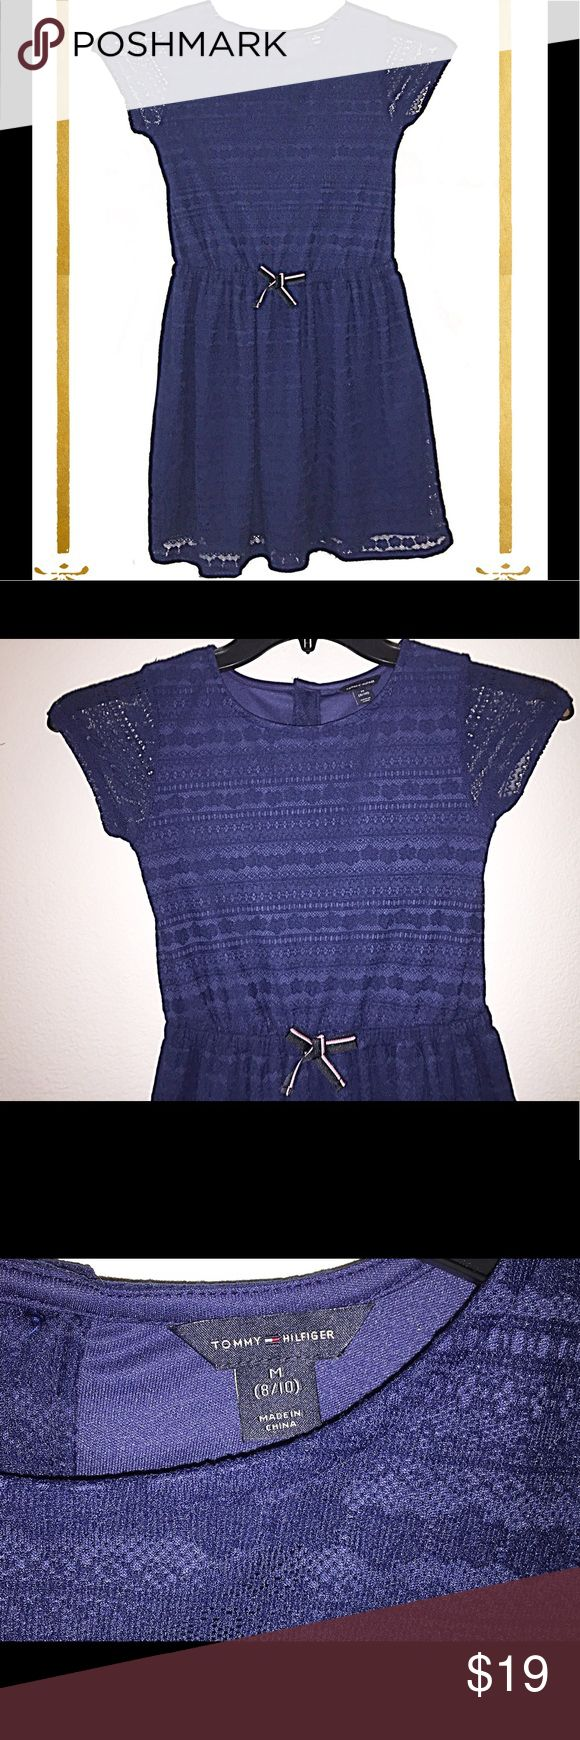 Tommy Hilfiger Girl's Dress Size 8-10 in Navy EUC This Tommy Hilfiger Girl's Dress in navy is size 8-10.  Perfect casual dress with touches of elegance such as the lace-type overlay and mini bow in front.  EUC. Tommy Hilfiger Dresses Casual